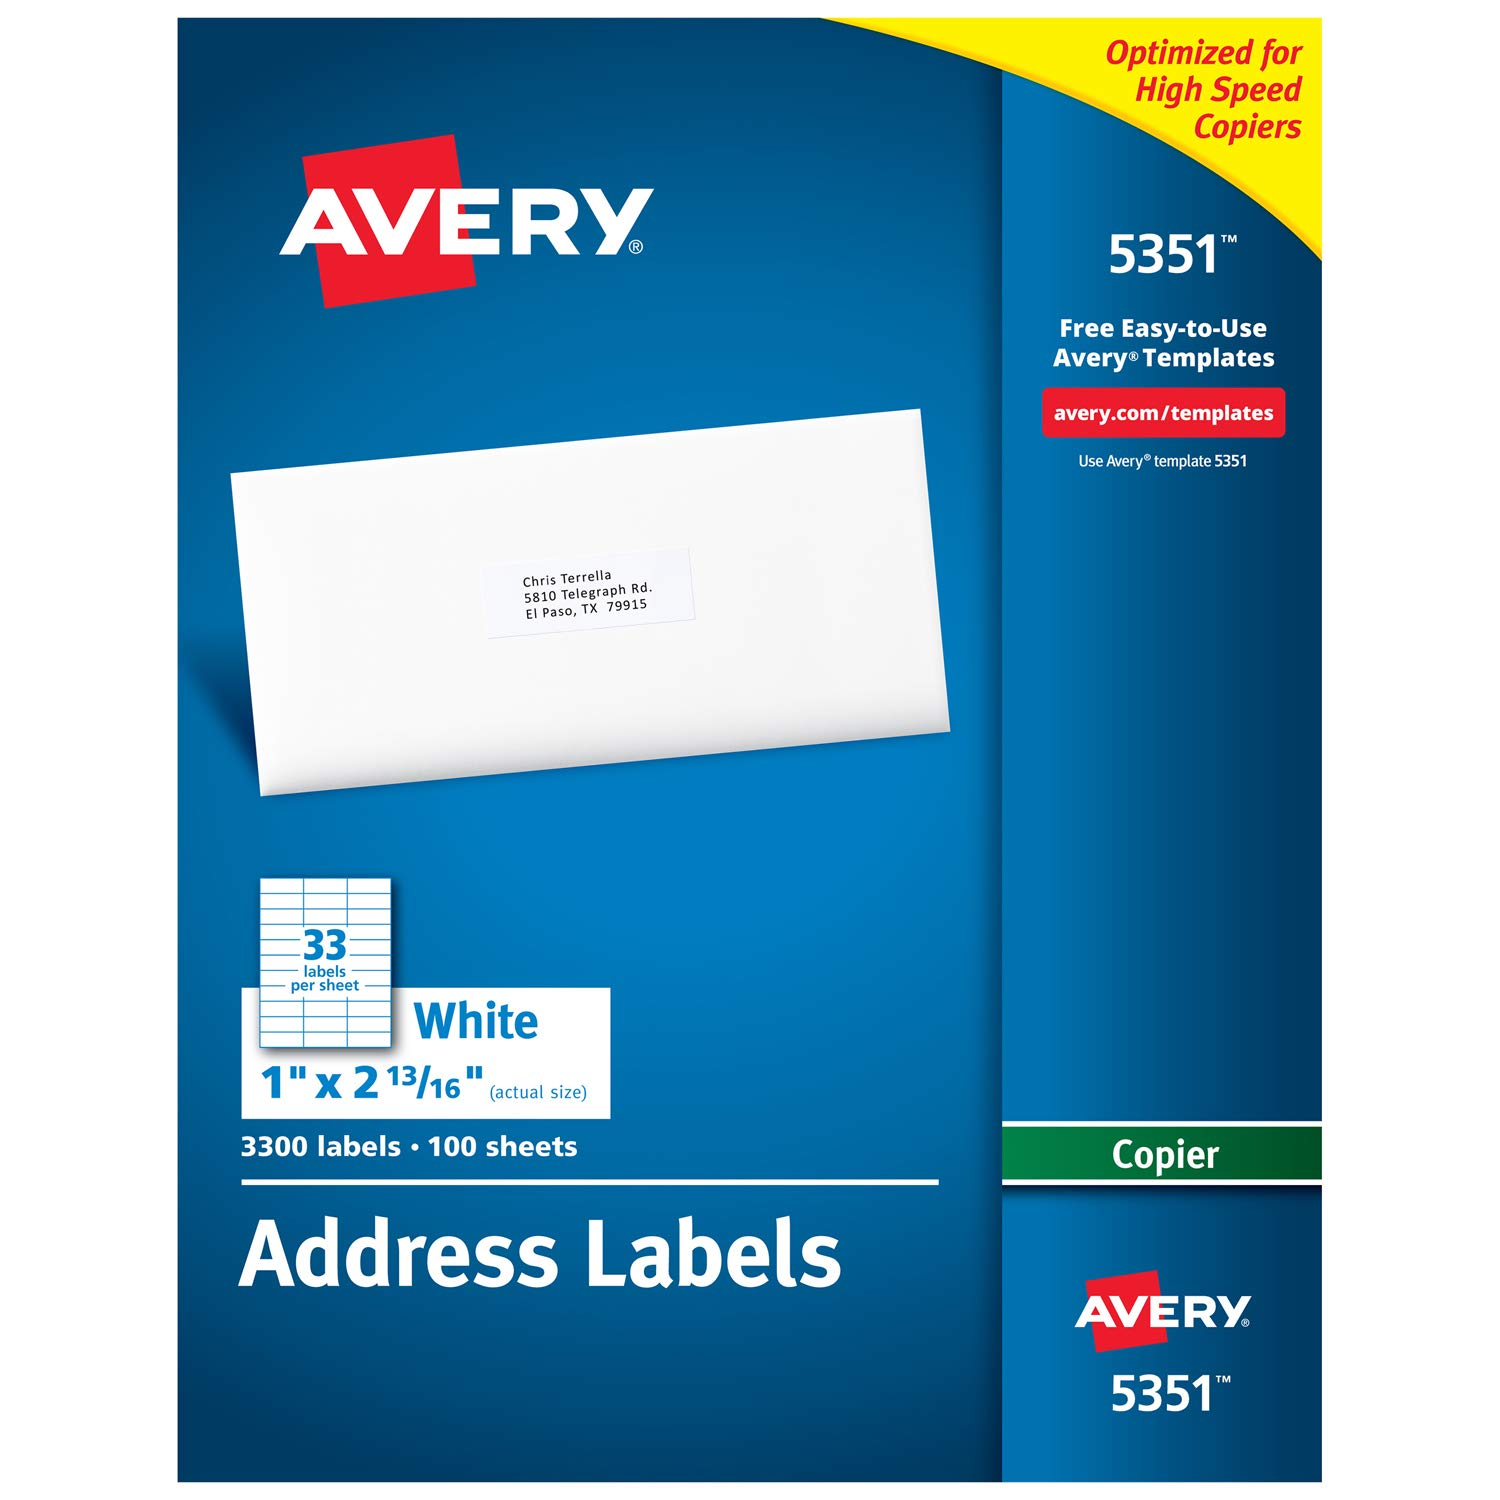 Avery Address Labels for Copiers 1 x 2-13/16, Box of 3,300 (5351), White by AVERY